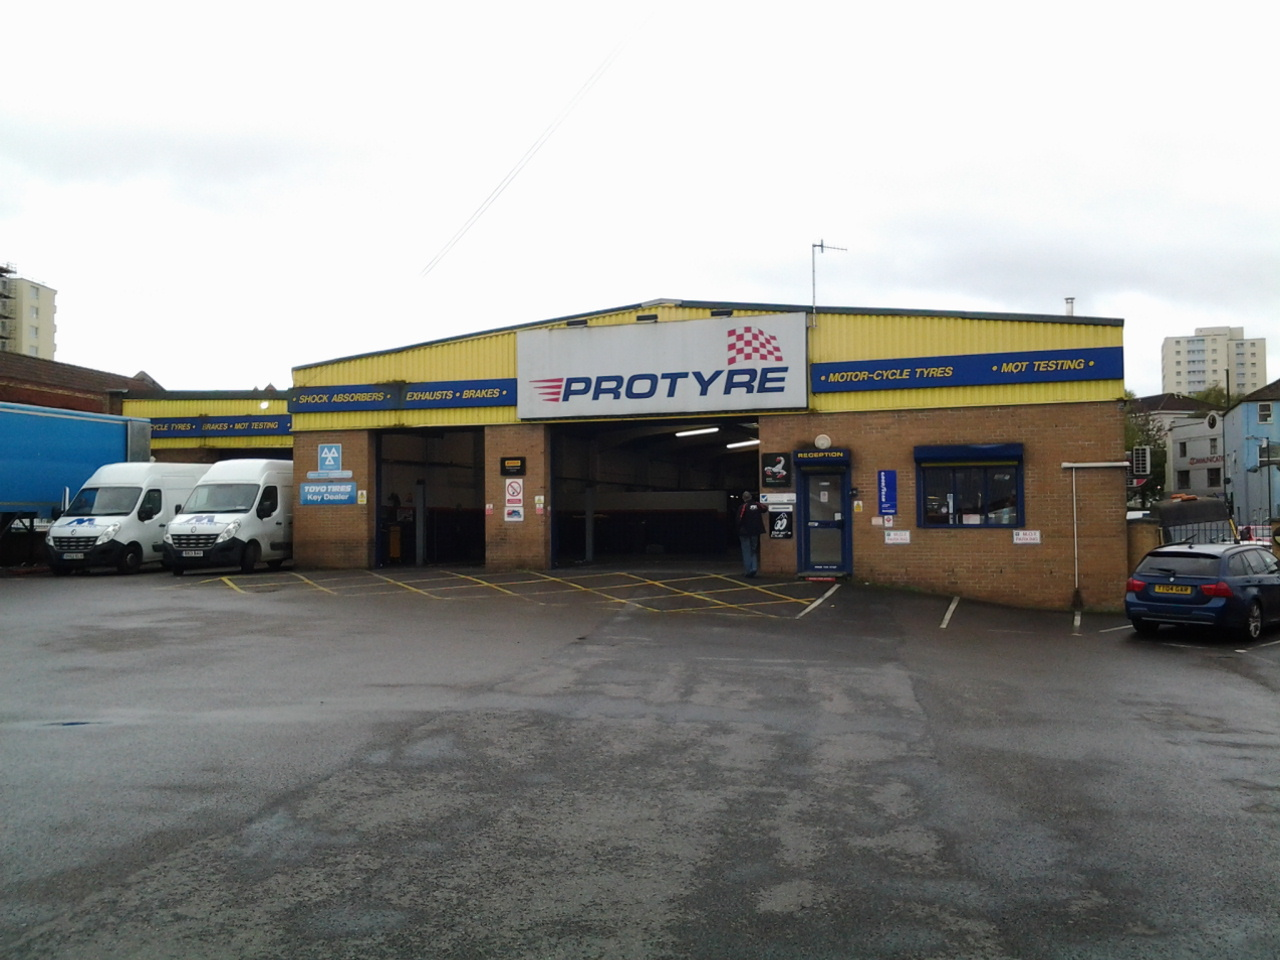 Get Tyres In Bristol Tyre Fittings Servicing Mots Protyre